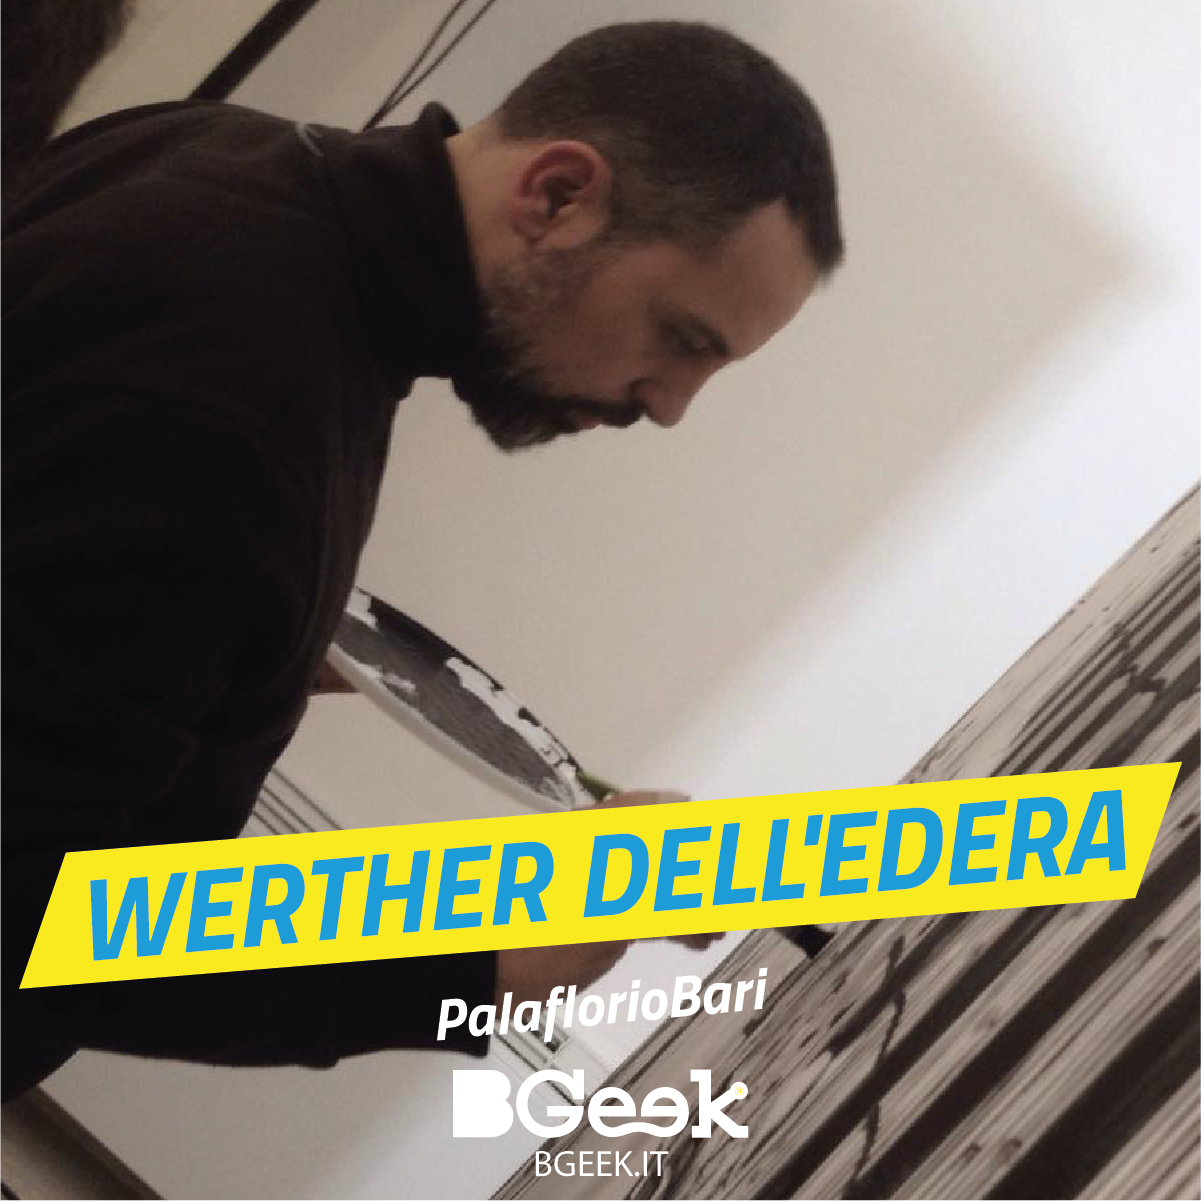 Bgeek_website_ospiti_1200x1200_werther dell'edera